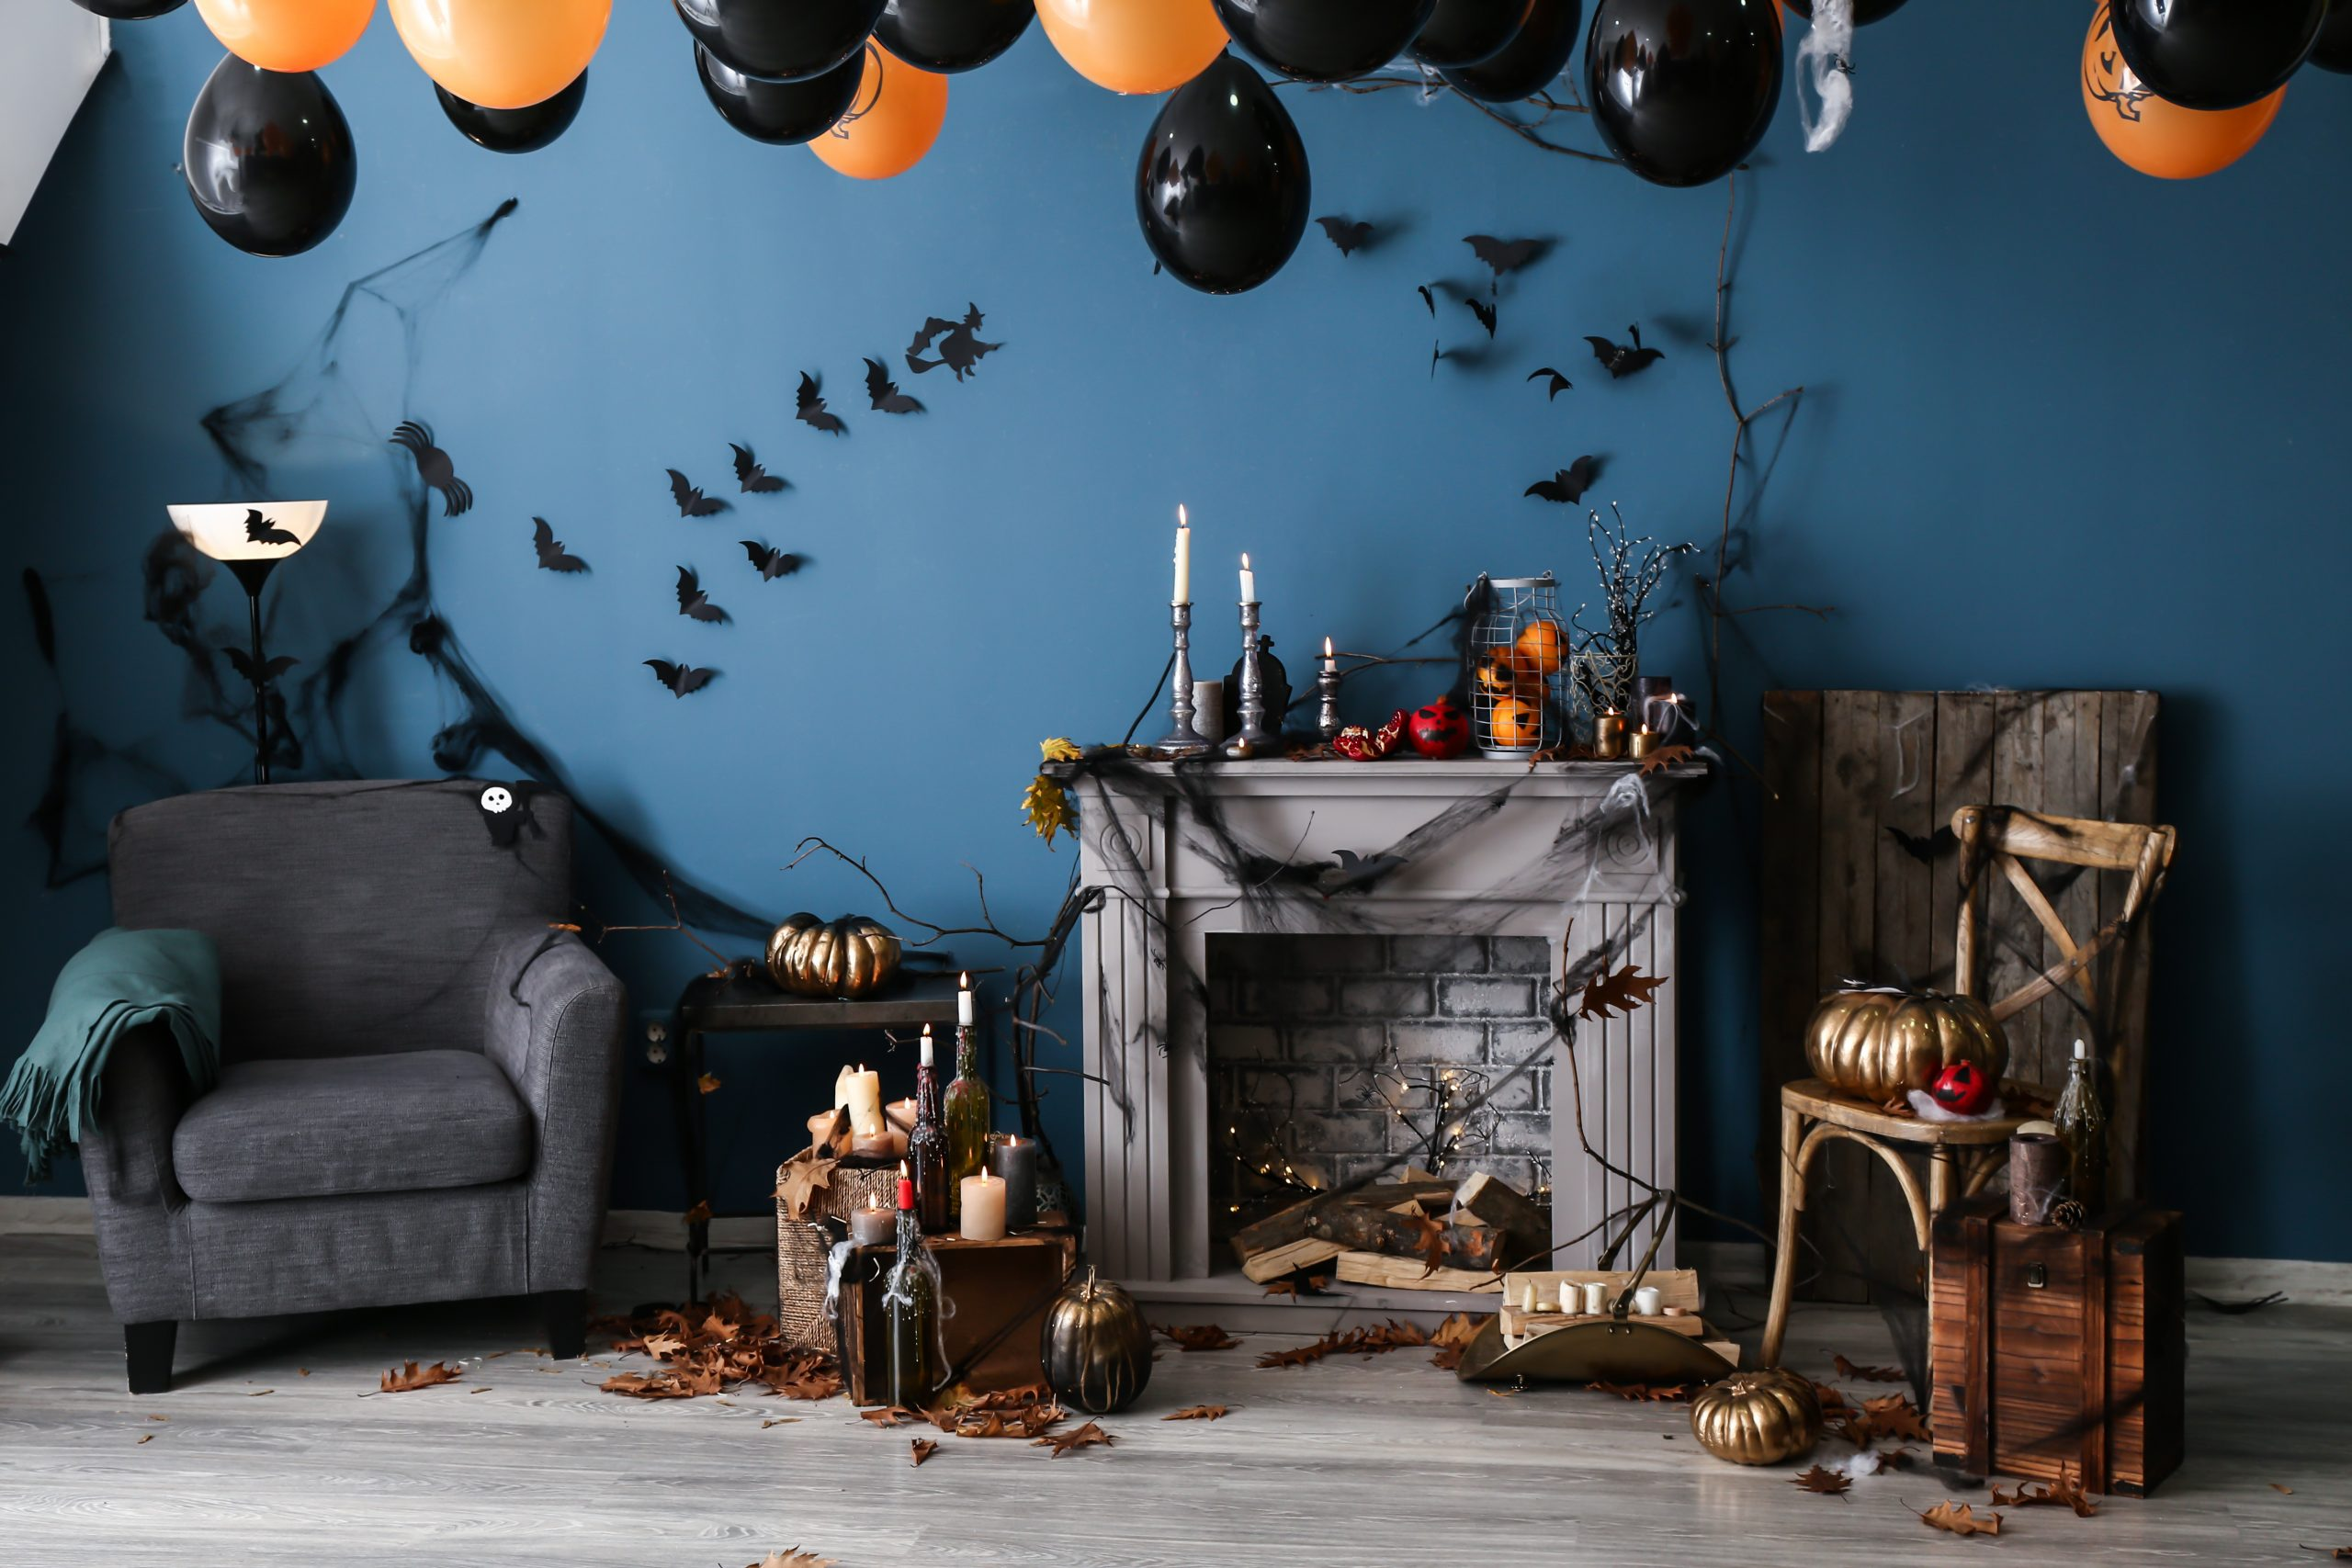 Interior of room decorated for Halloween party